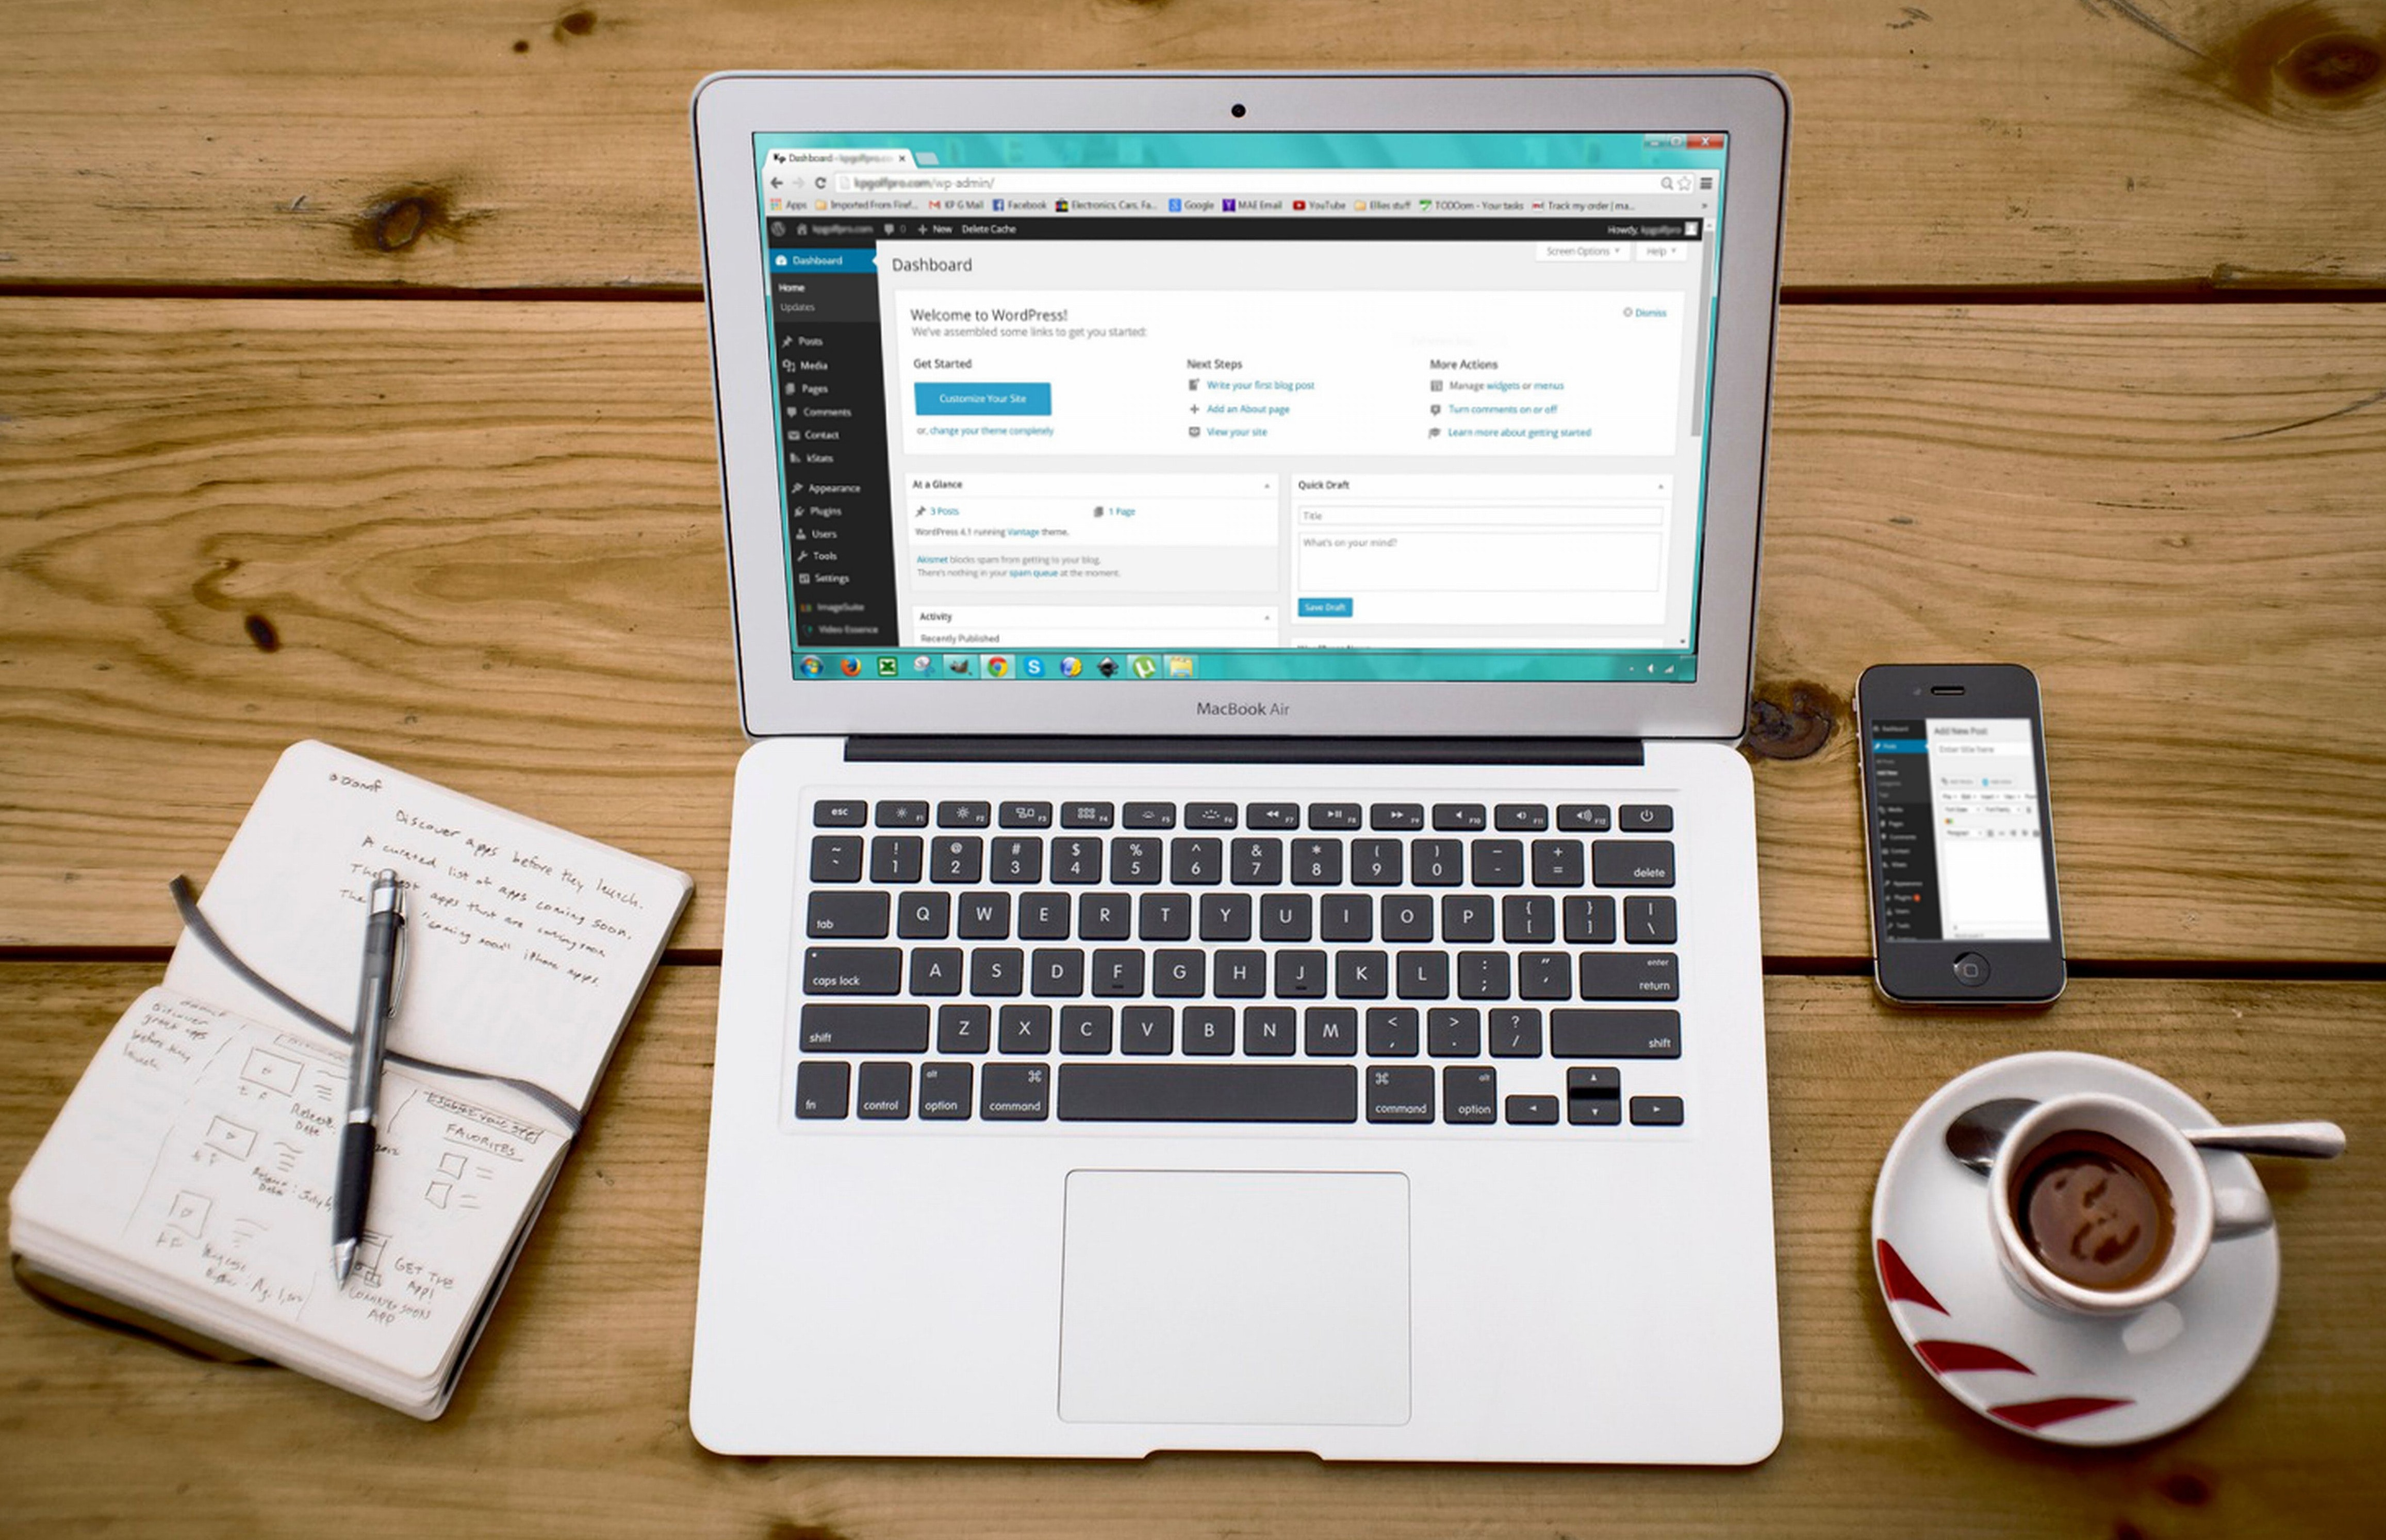 A laptop on a desk showing the WordPress dashboard next to a notebook, a phone and a cup of coffe